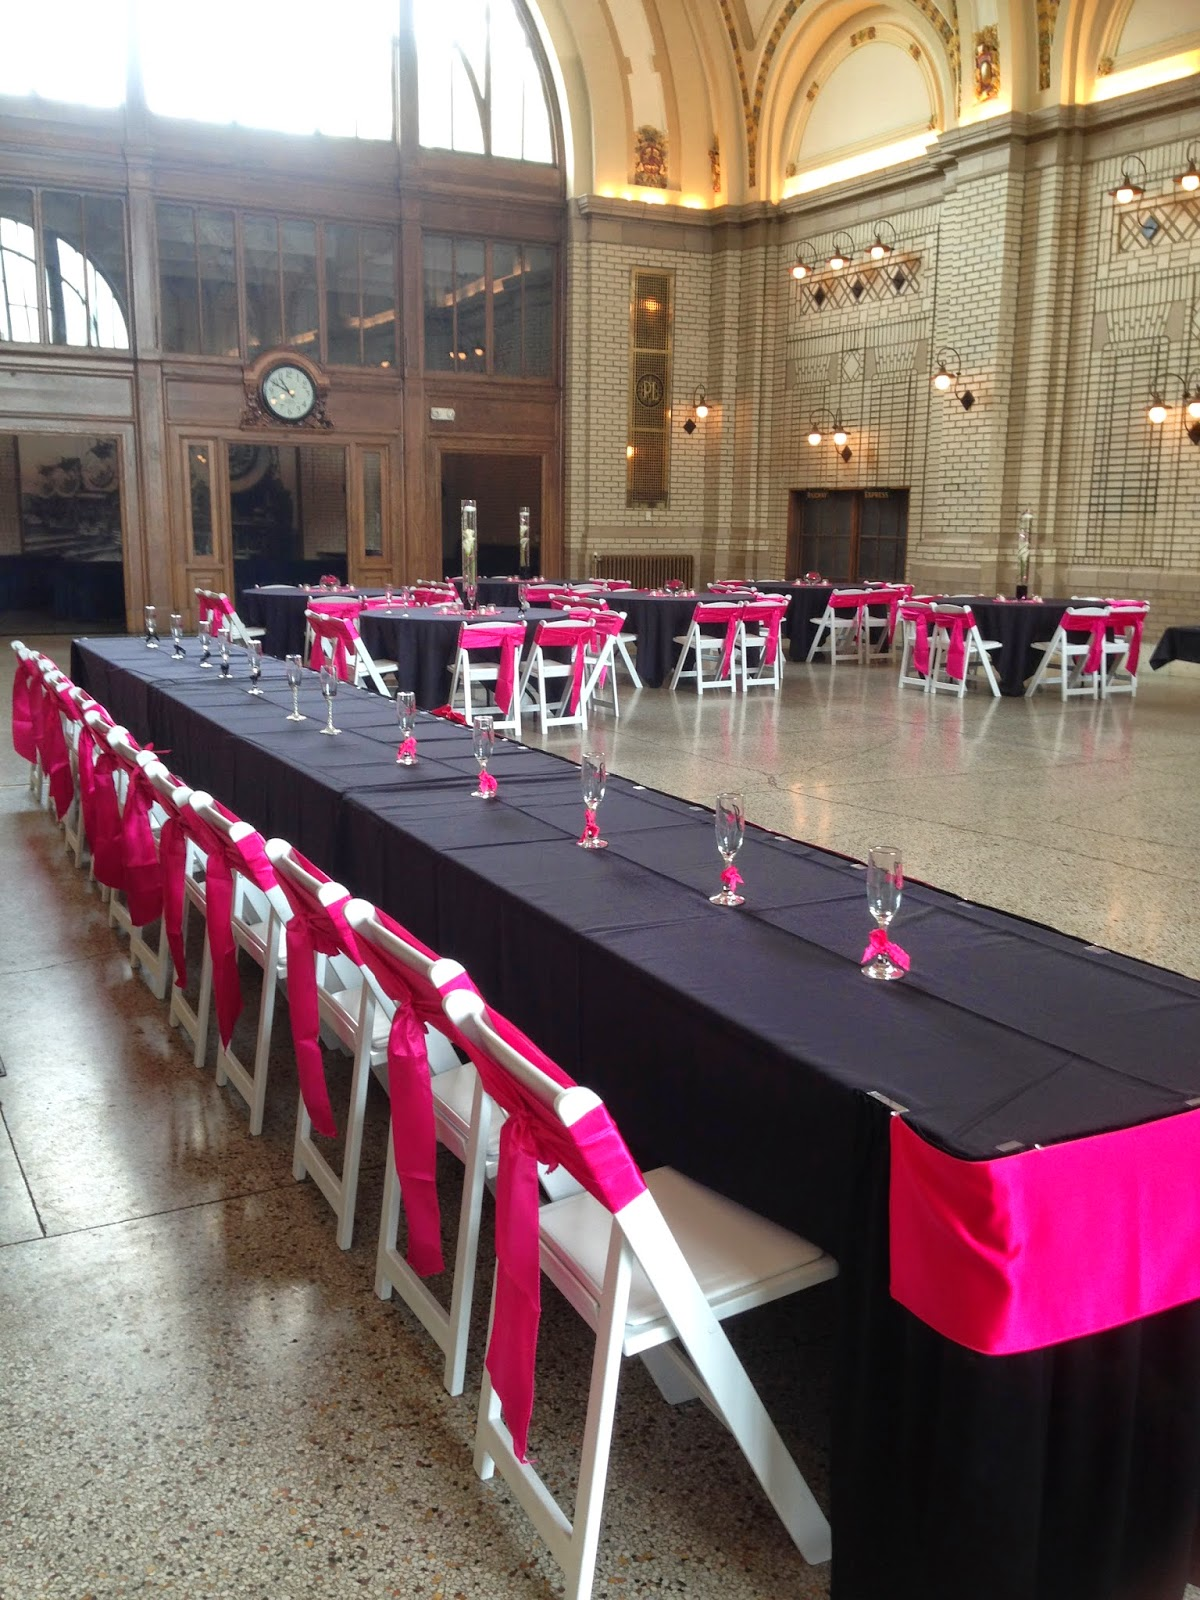 Table And Chair Rentals In Delaware West Elm Desk Summit City Rental Linen Cover Renta Up Lighting Event Wedding Tent Party